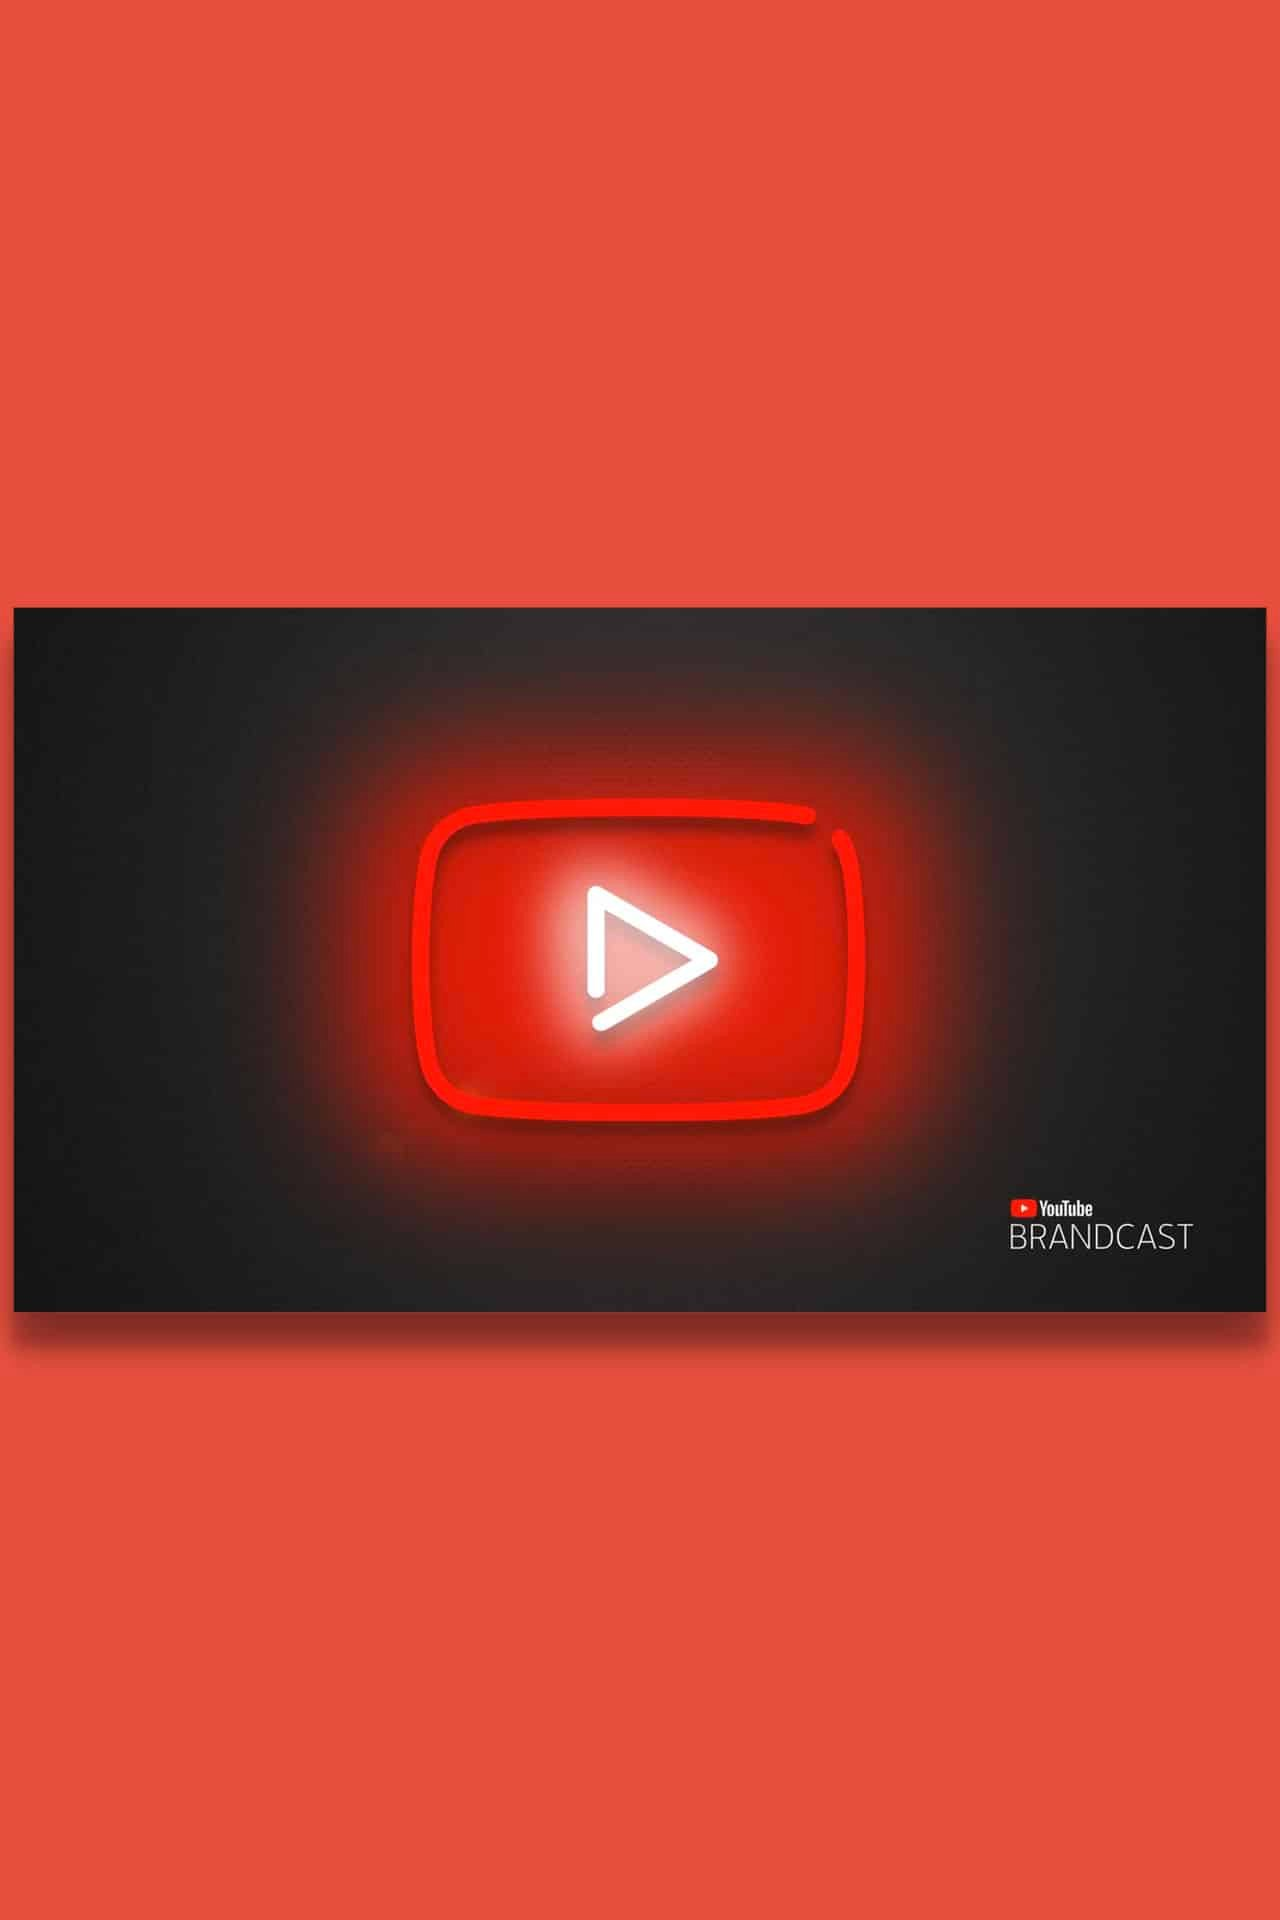 Youtube Brandcast 2019 google preferred